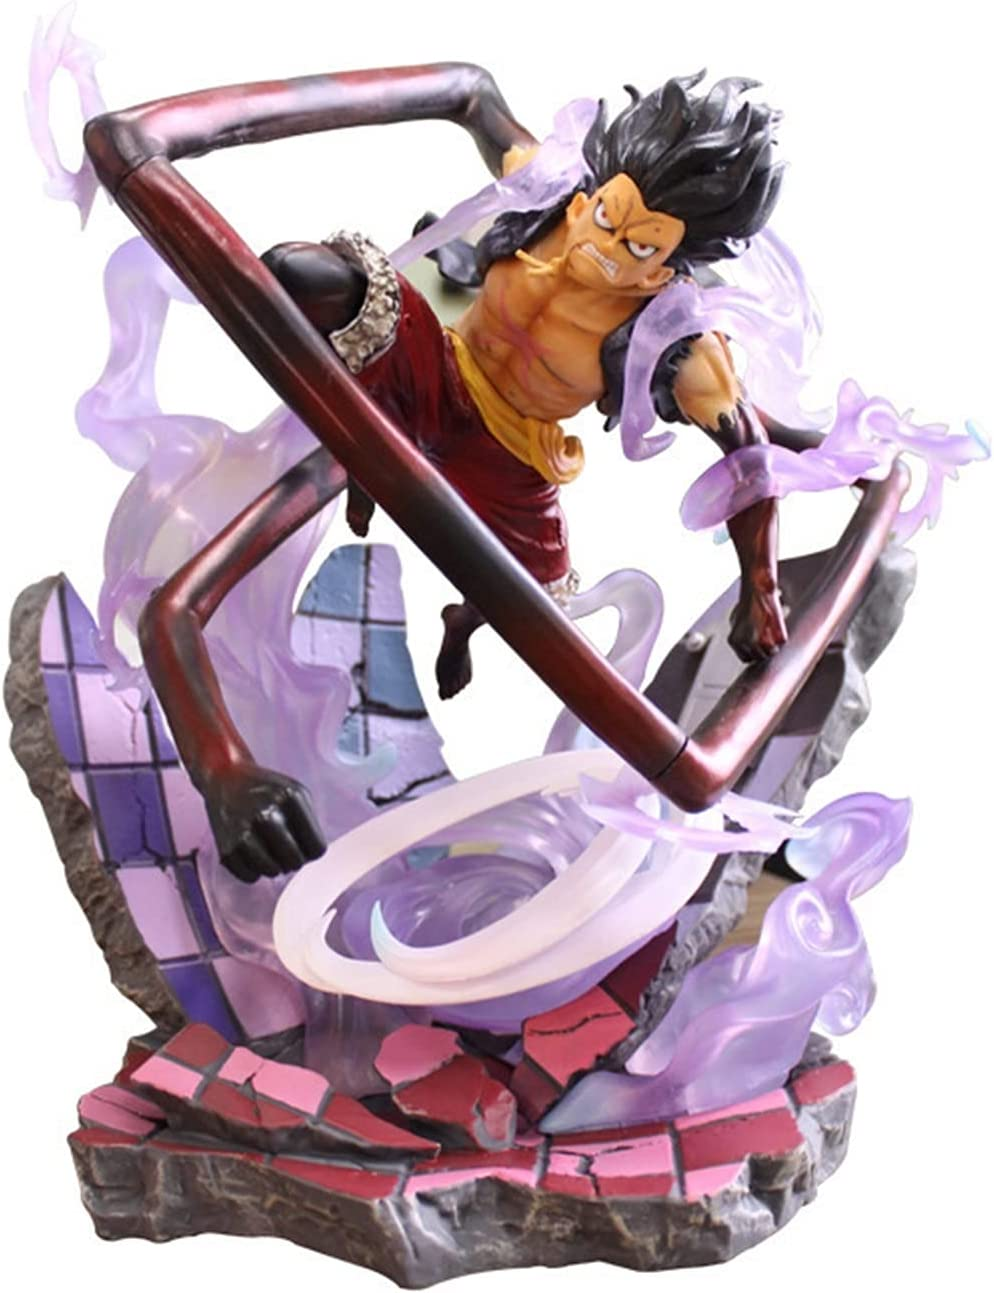 ZZQYY CERen One Piece - Monkey D. Action Luffy Gears Mo Spring new work one after another Figure 4 National products